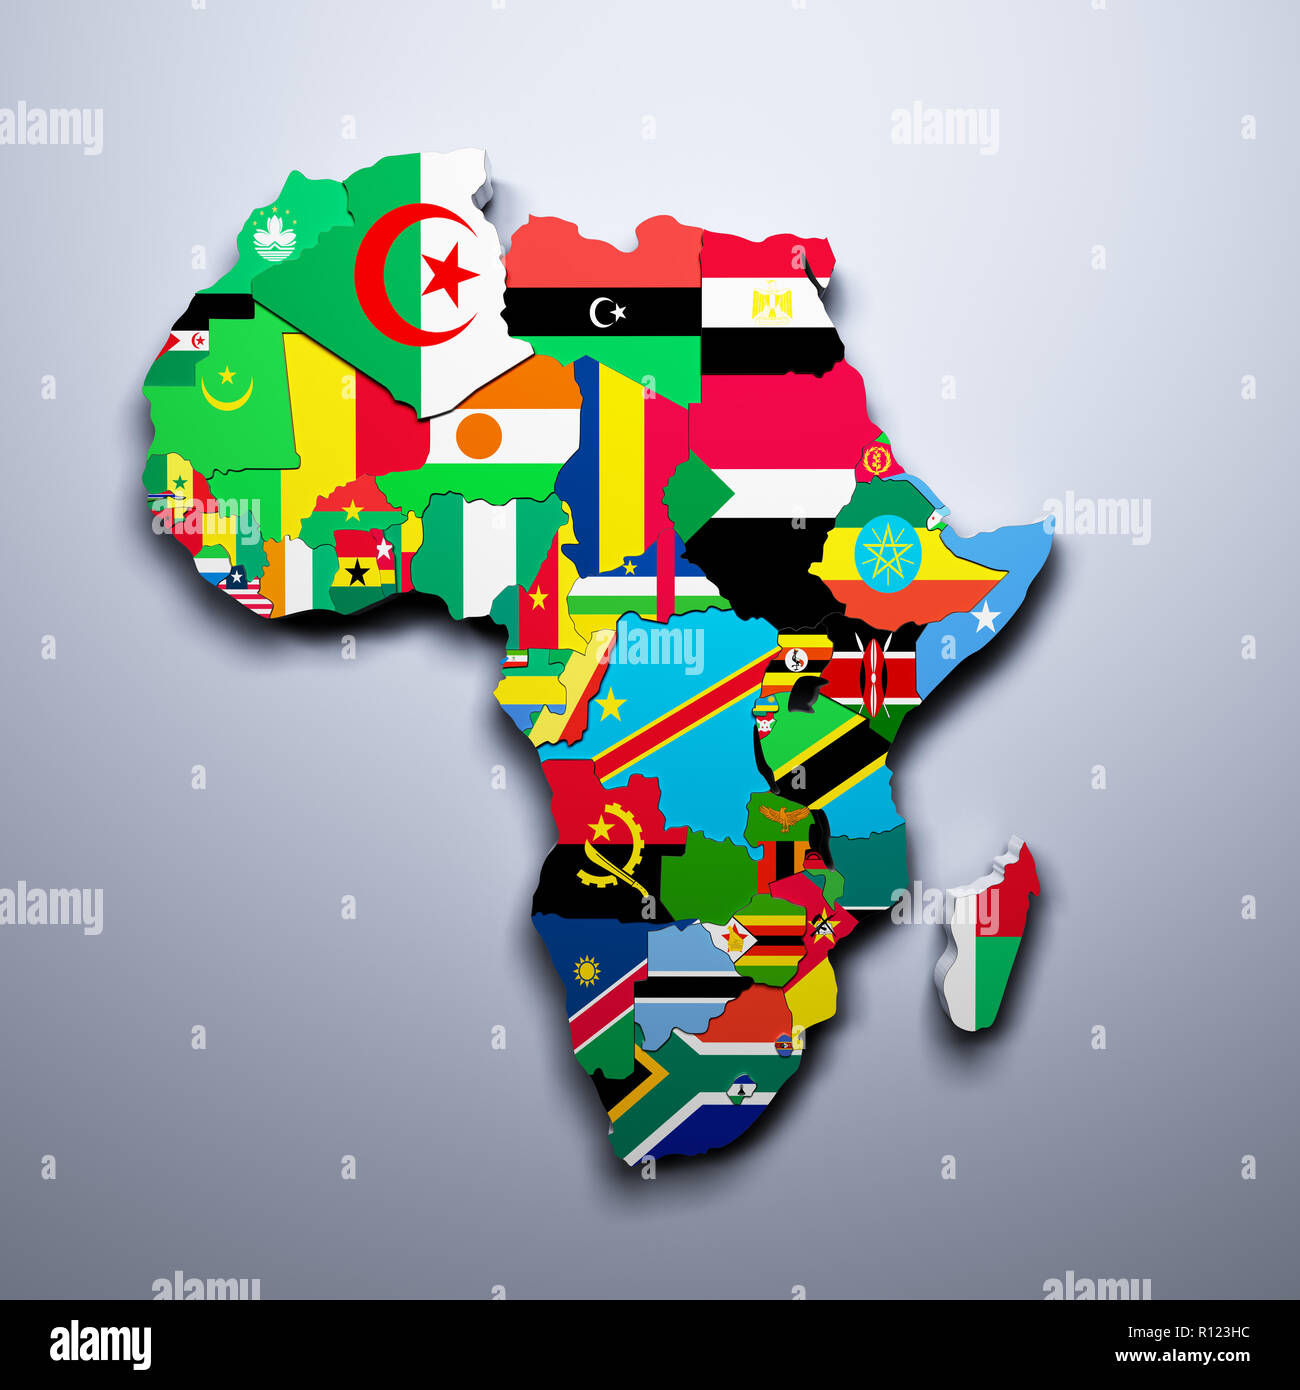 Map Of Africa Flags.Africa Map With Flags Of The Countries 3d Render Stock Photo